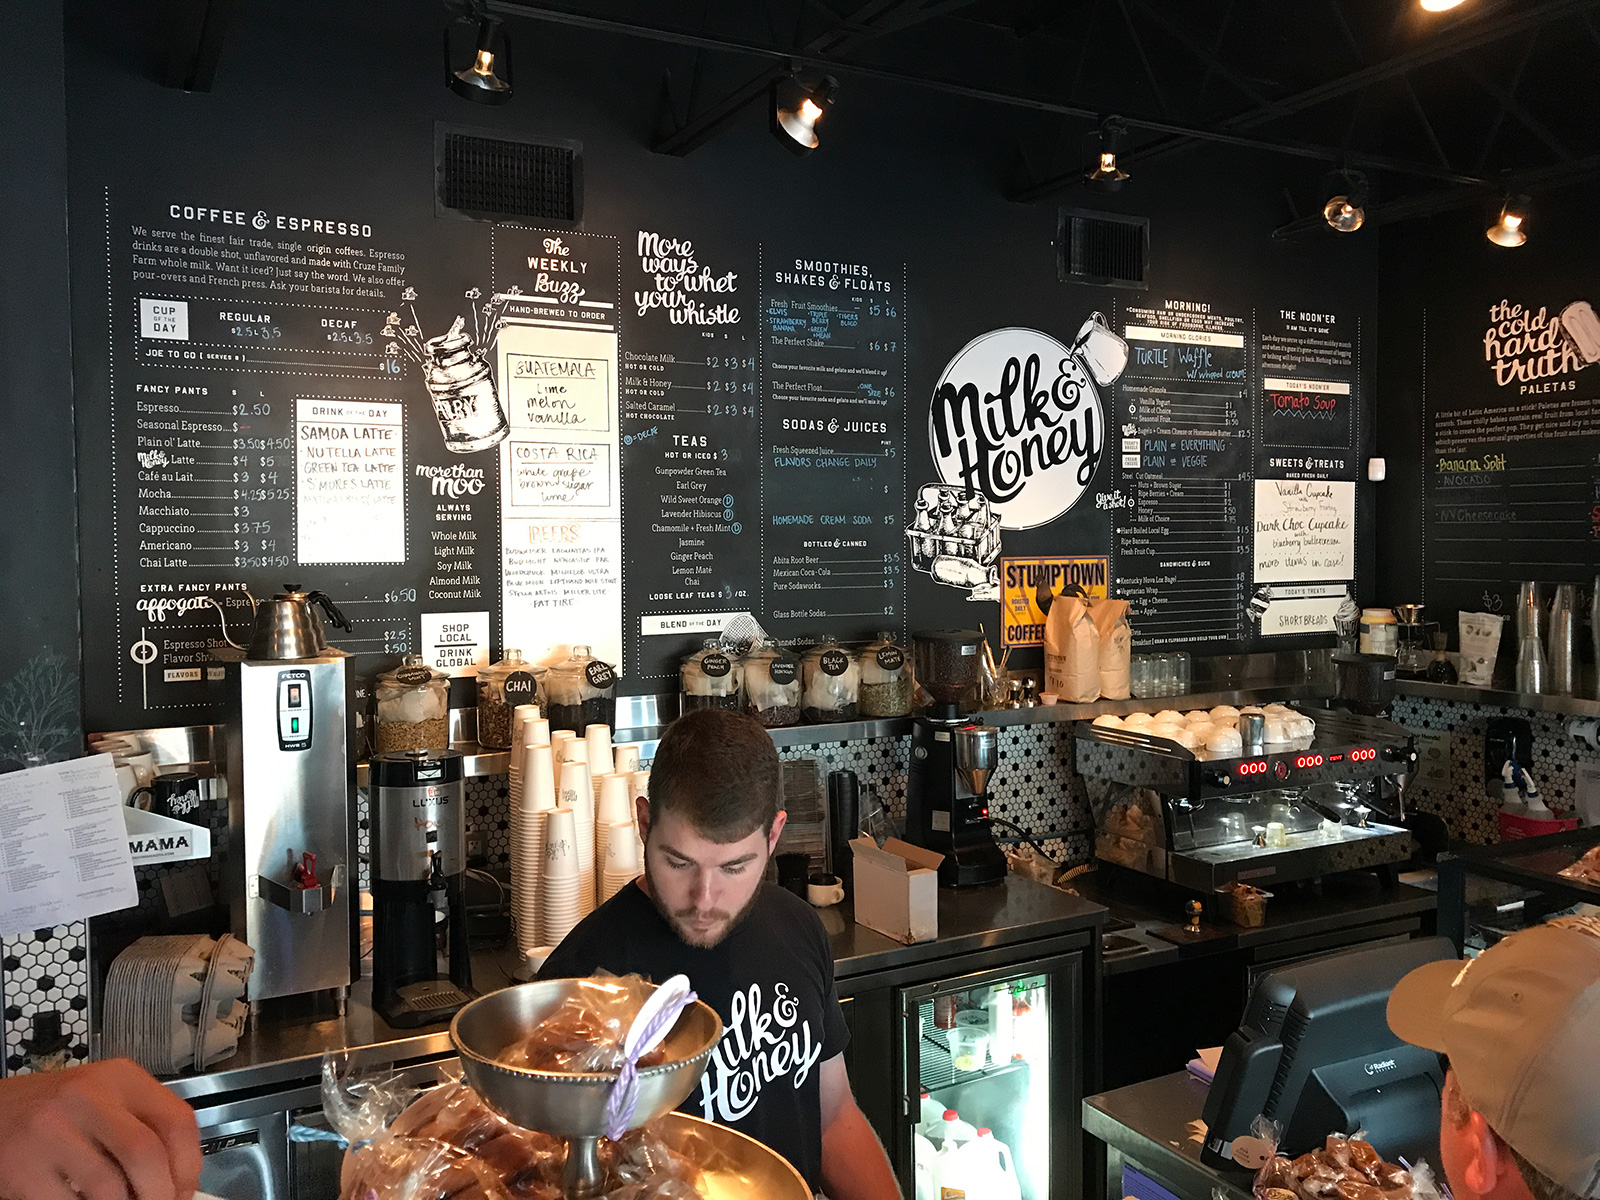 Milk & Honey in Chattanooga, TN by Jets Like Taxis